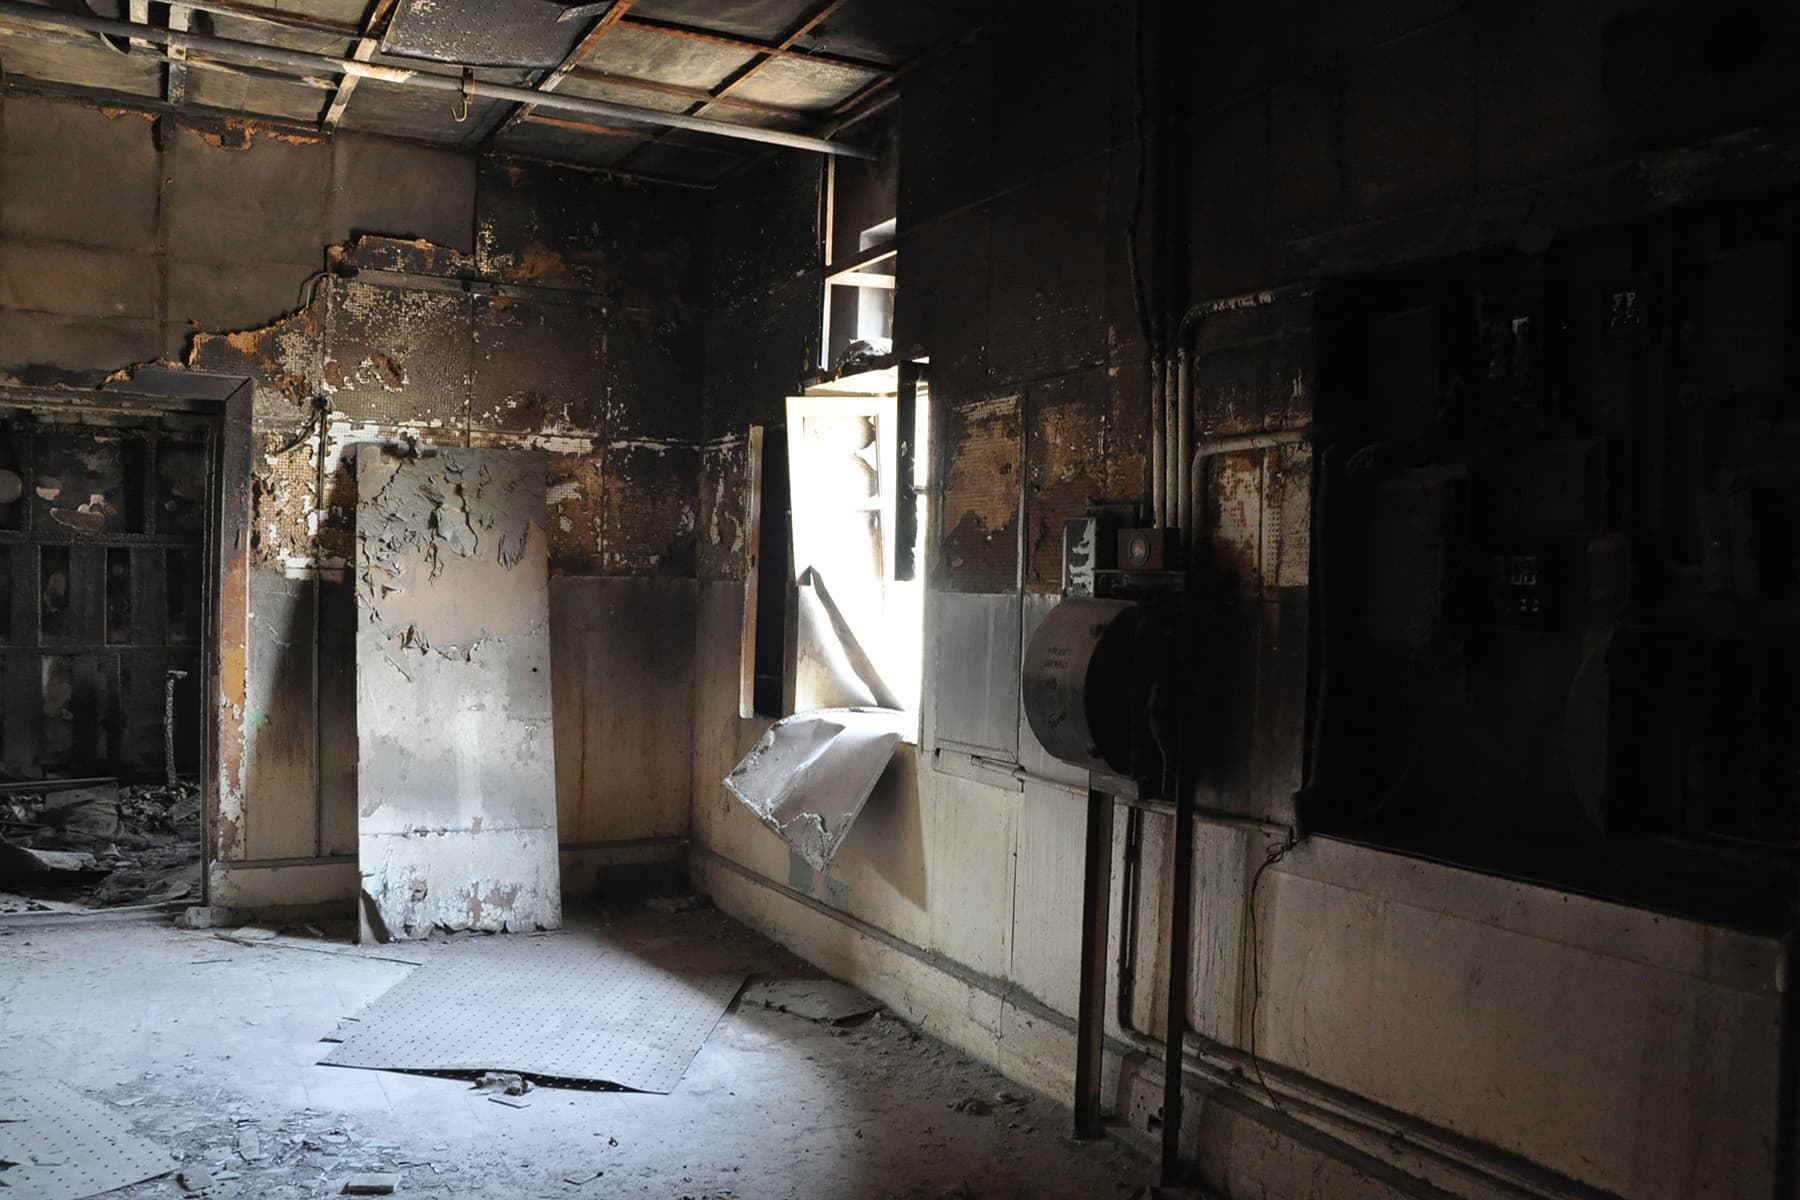 Short-circuit caused fire on the first floor.